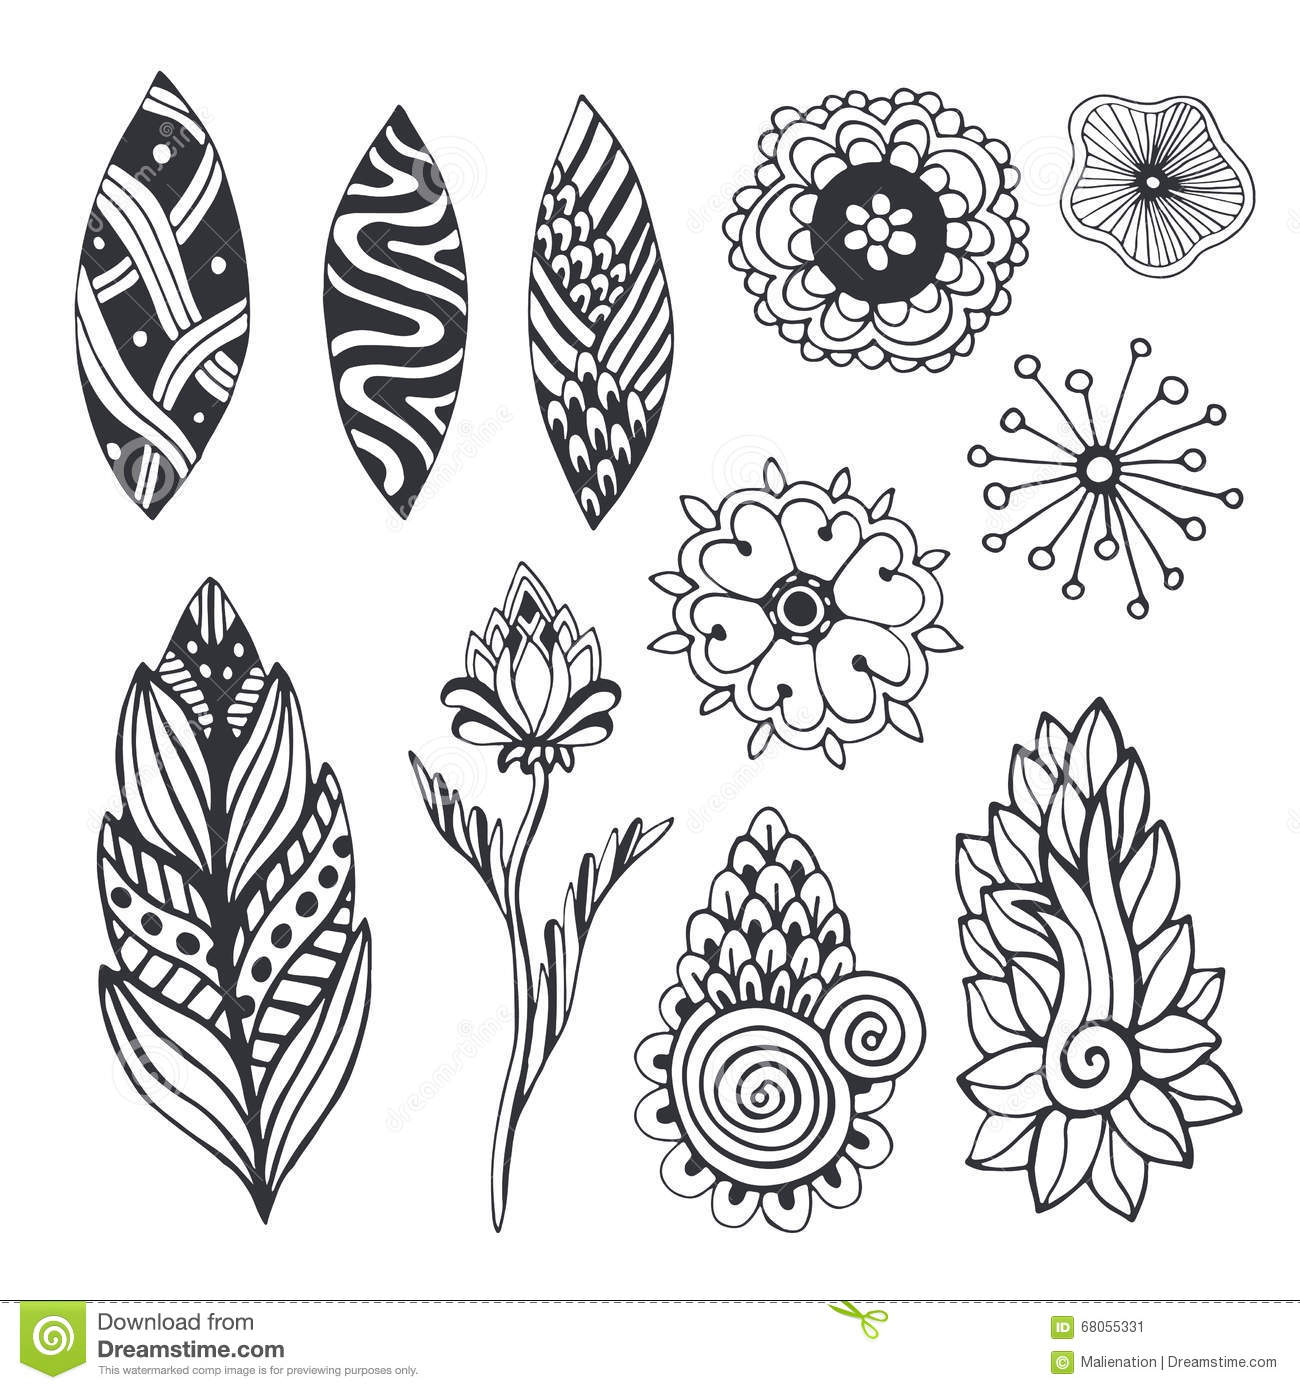 nature collection zentangle style hand drawn vector set doodle flowers leaves coloring page stickers other 68055331 moreover bohemian coloring pages 1 on bohemian coloring pages also bohemian coloring pages 2 on bohemian coloring pages furthermore bohemian coloring pages 3 on bohemian coloring pages including bohemian coloring pages 4 on bohemian coloring pages